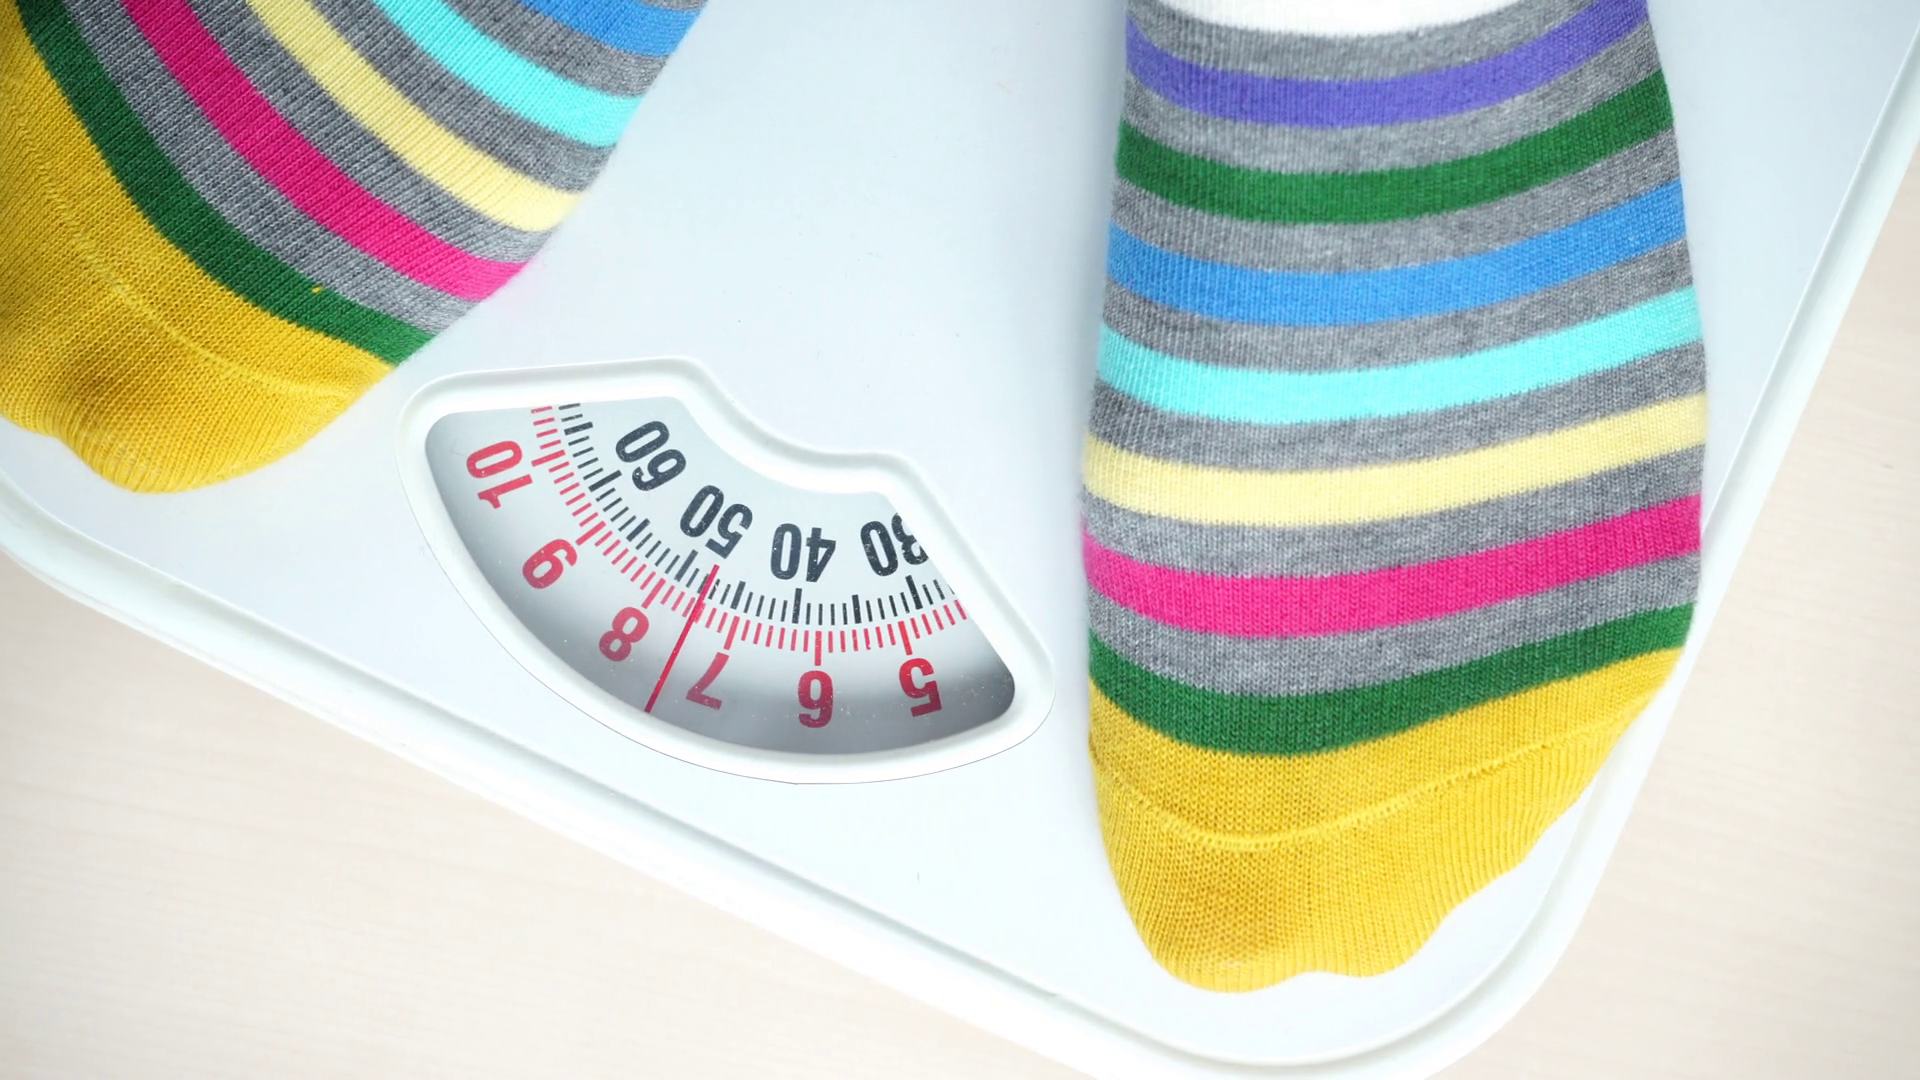 videoblocks-female-feet-in-colorful-socks-stepping-on-bathroom-scales-woman-standing-on-weighing-machine-health-care-weight-loss-concept-4k-prores-hq-codec_sweogb0zb_thumbnail-full05.png